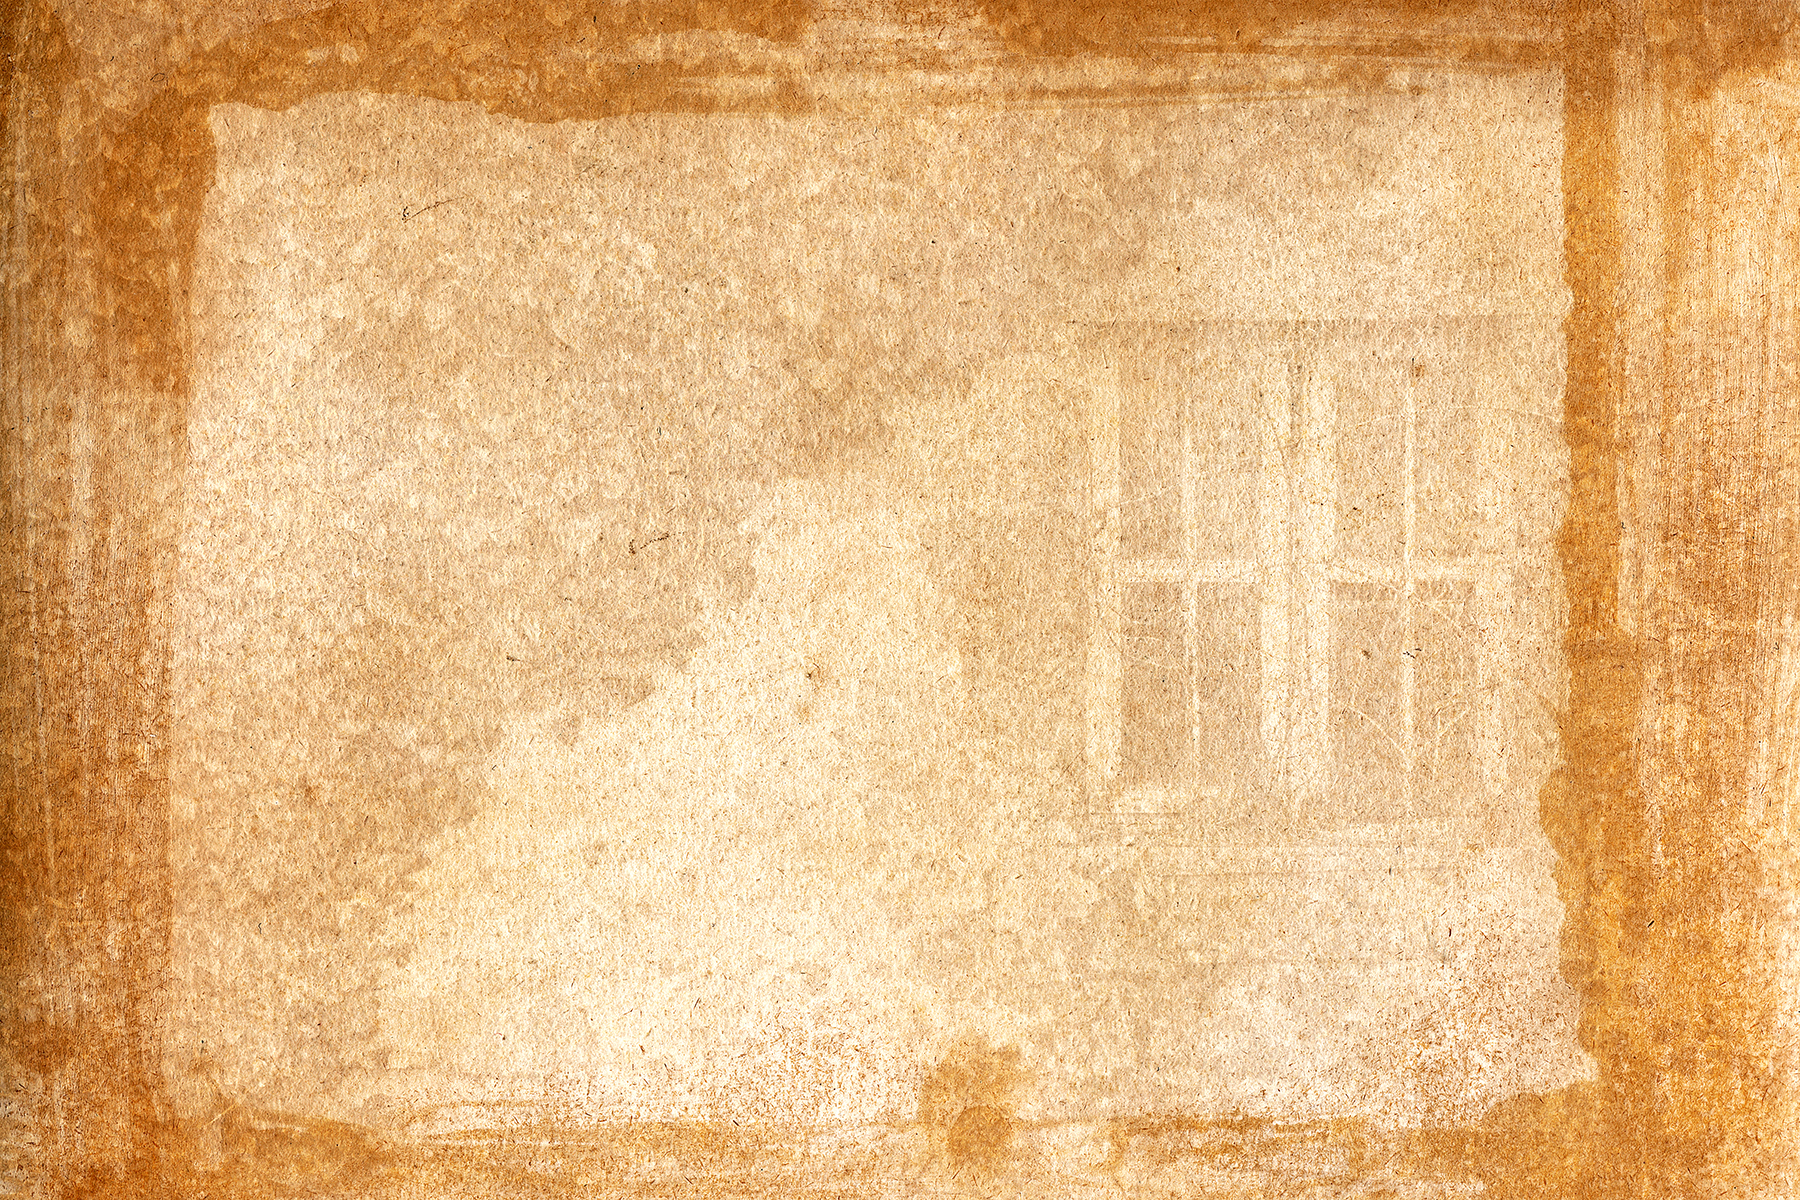 Abstract Vintage Frame, Abstract, Nostalgia, Raw, Paper, HQ Photo